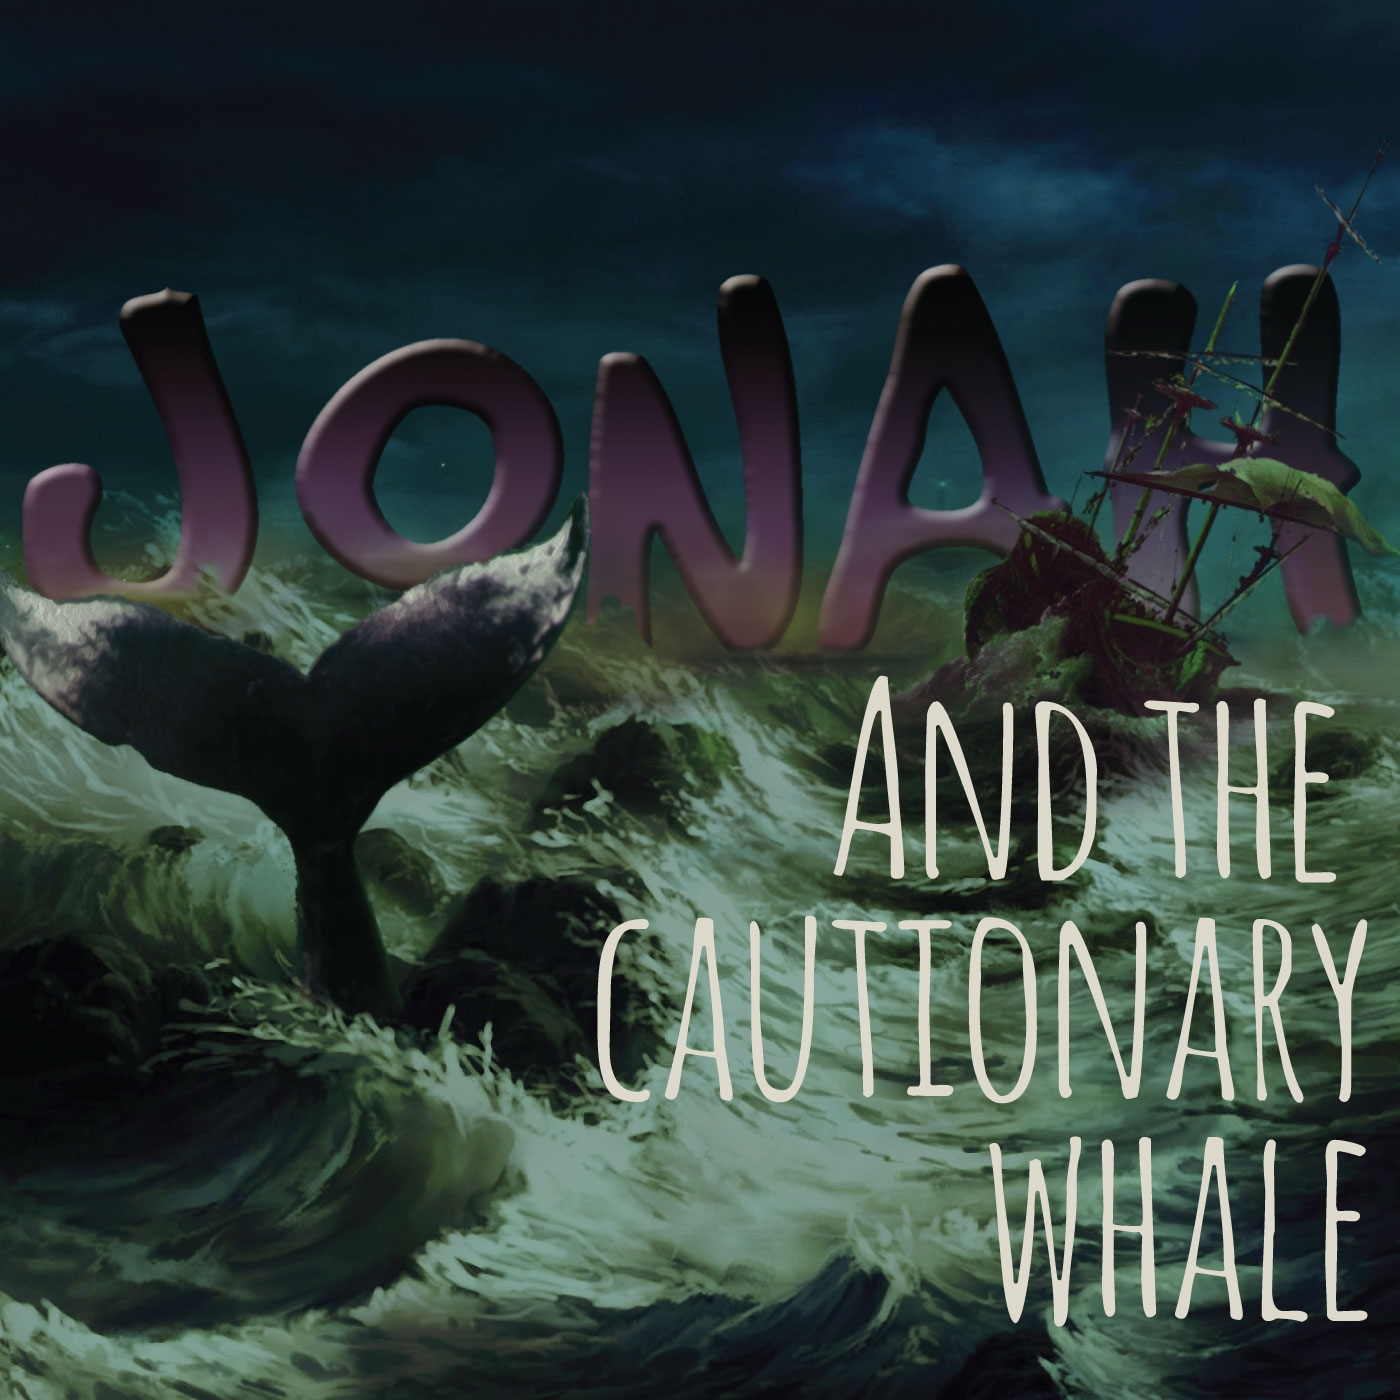 Jonah and the Cautionary Whale